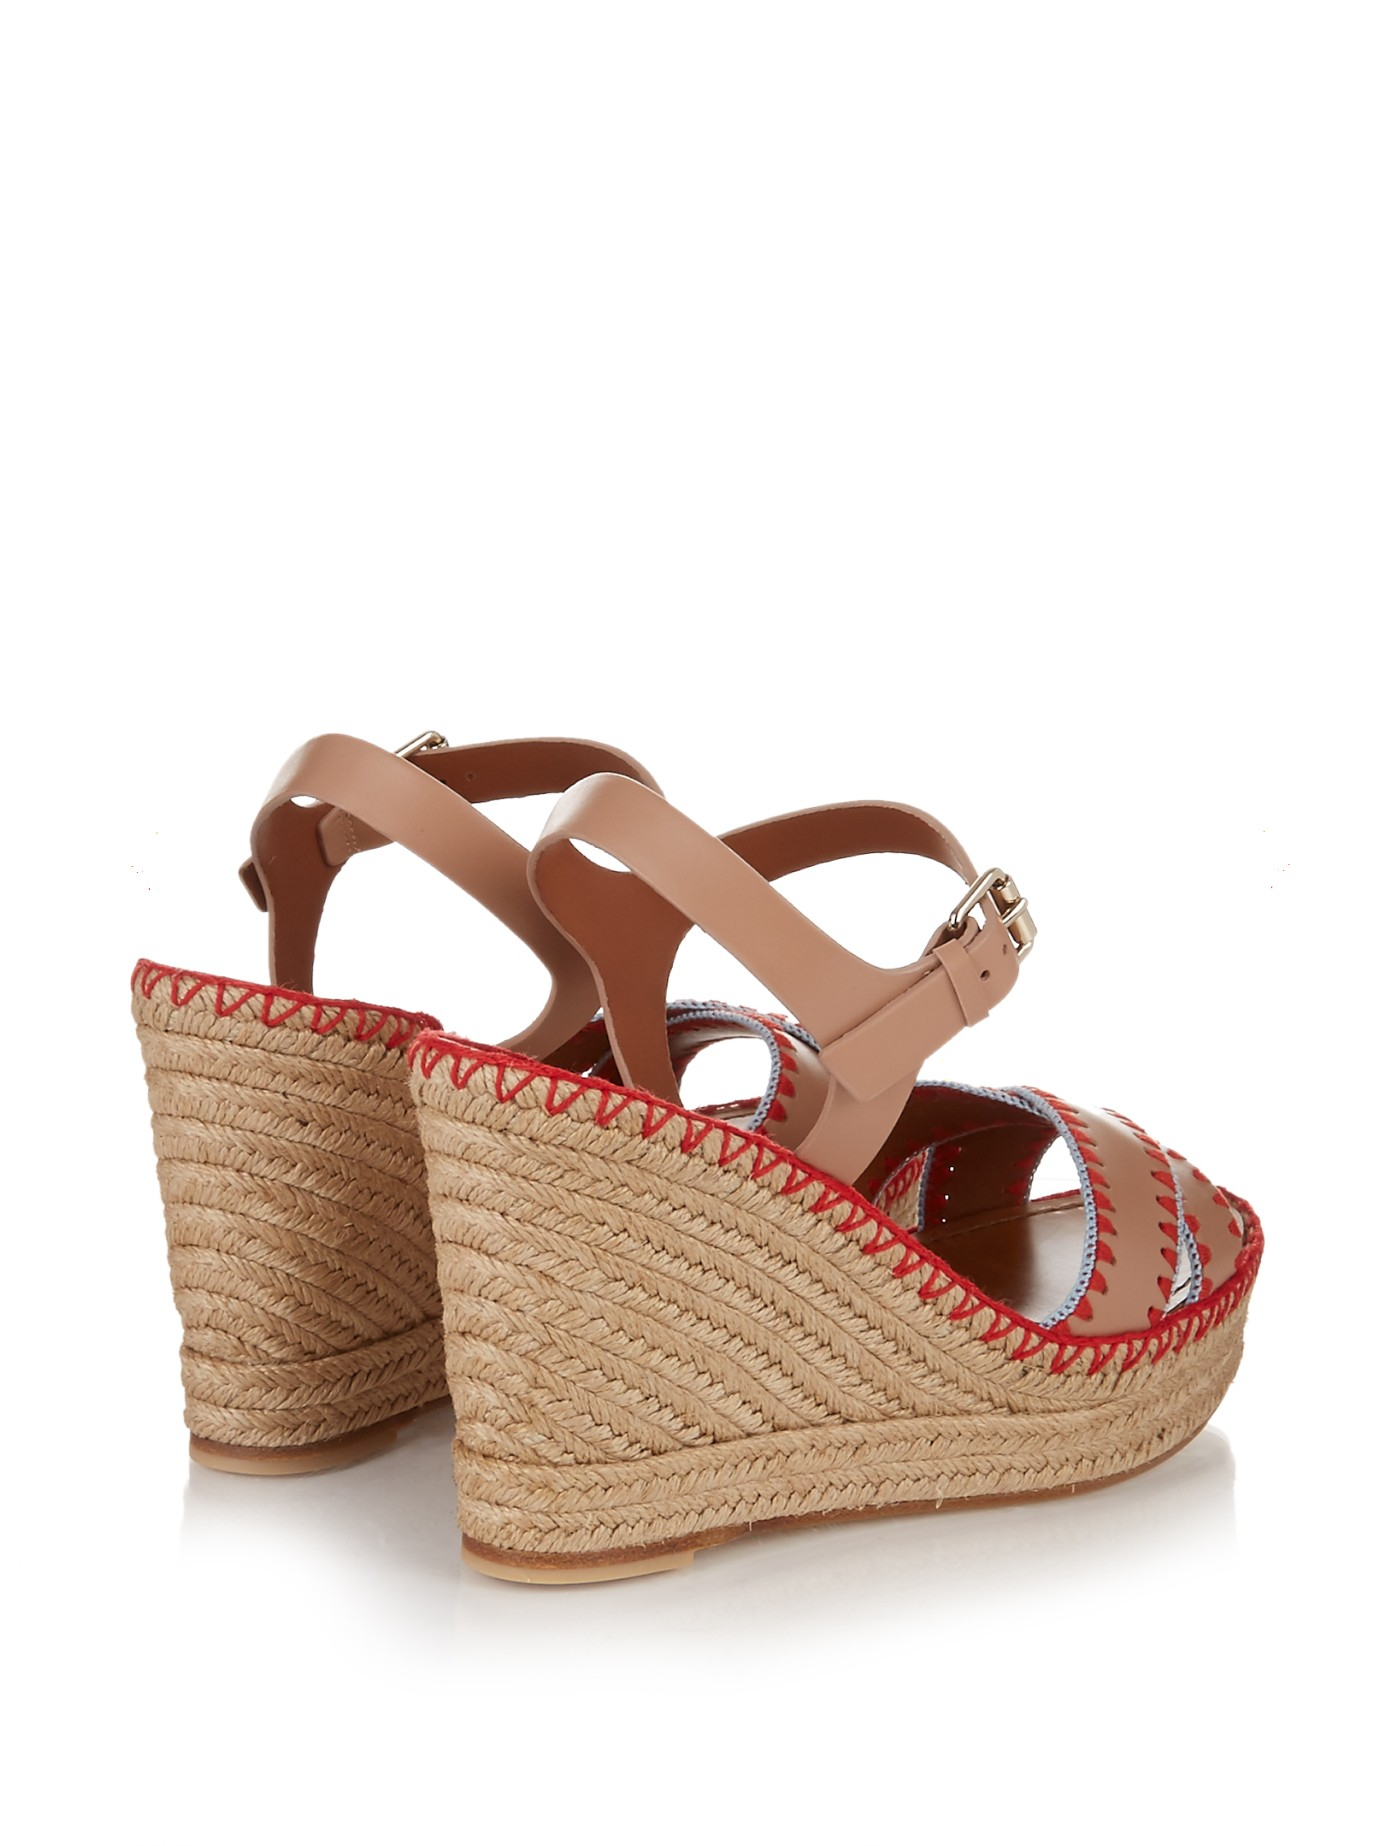 9f7b3734eae393 Lyst - Valentino Embroidered Leather Espadrille Sandals